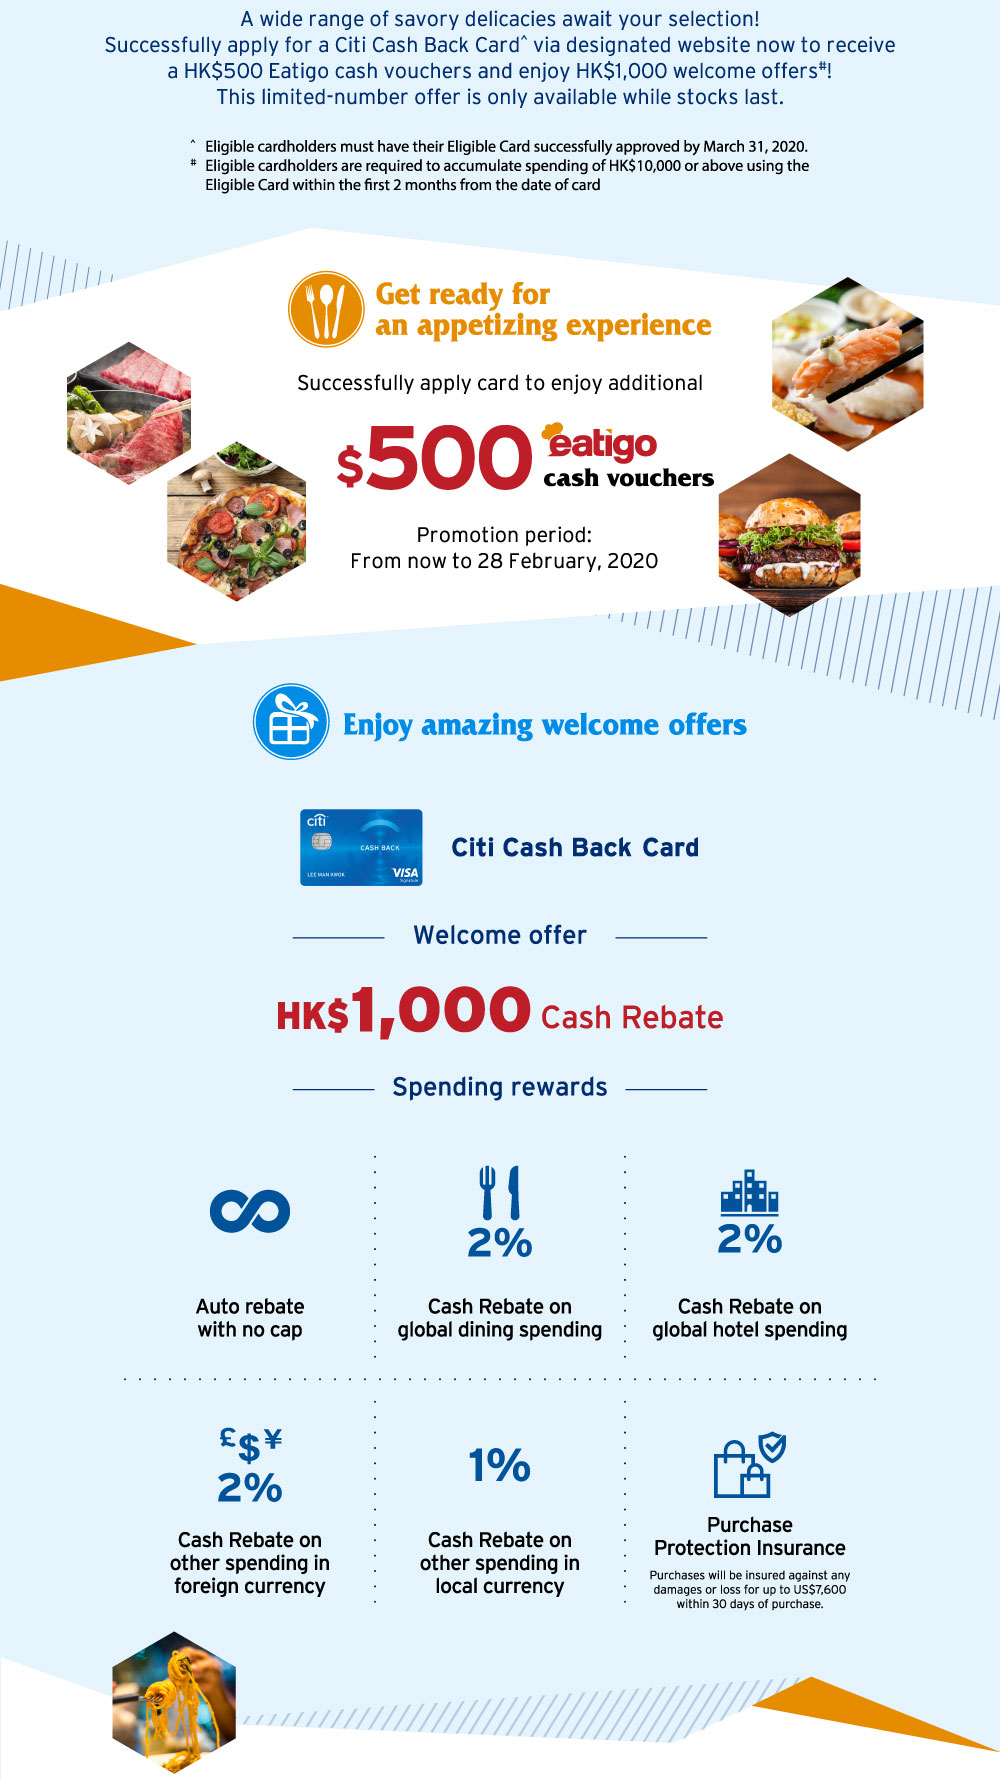 Enjoy additional HK$500 eatigo cash vouchers upon successful application of Citi credit cards! 5